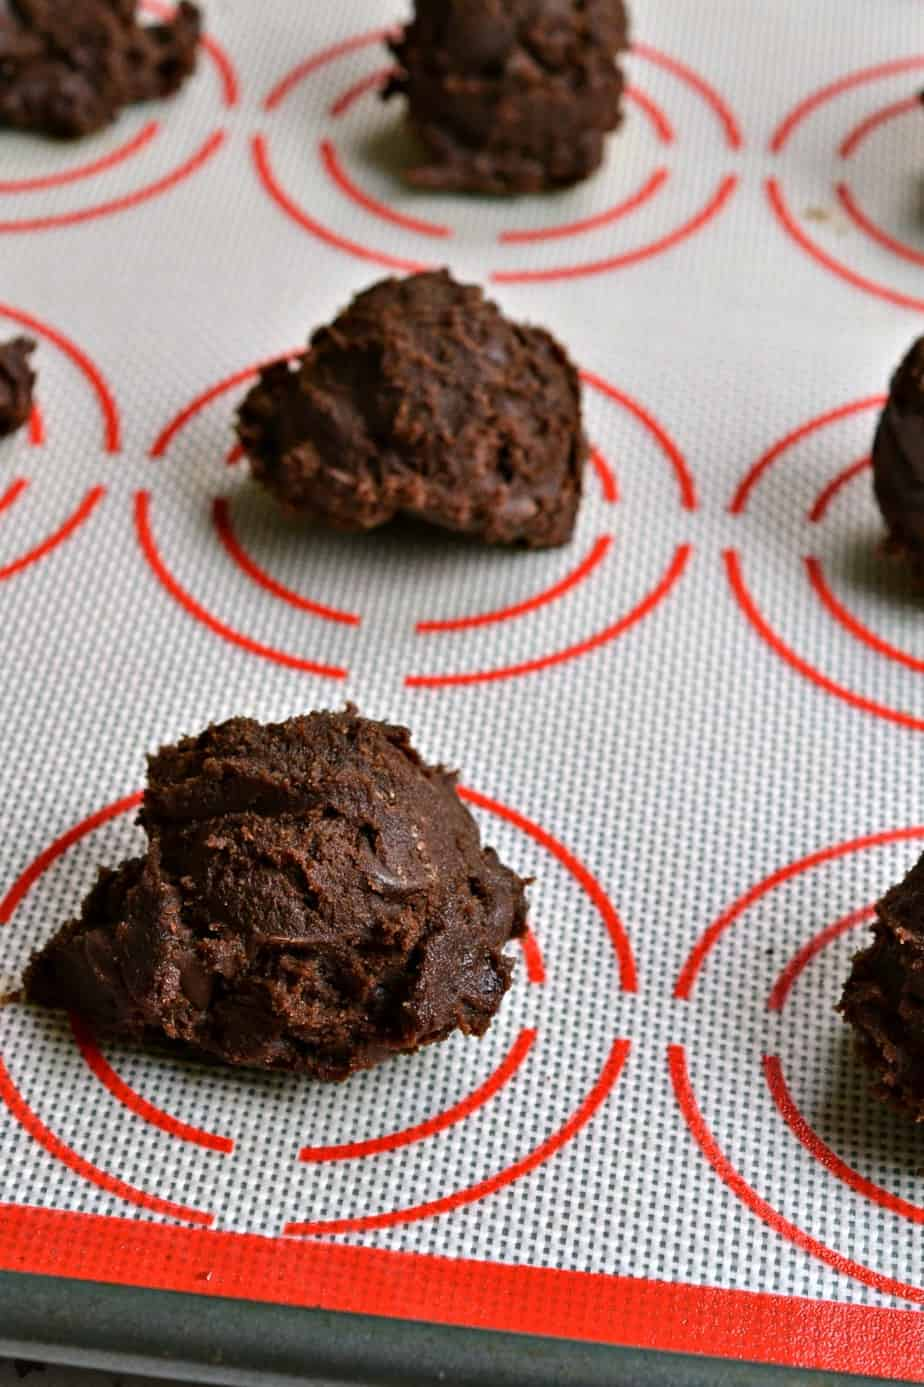 How to make Double Chocolate Chip Cookies